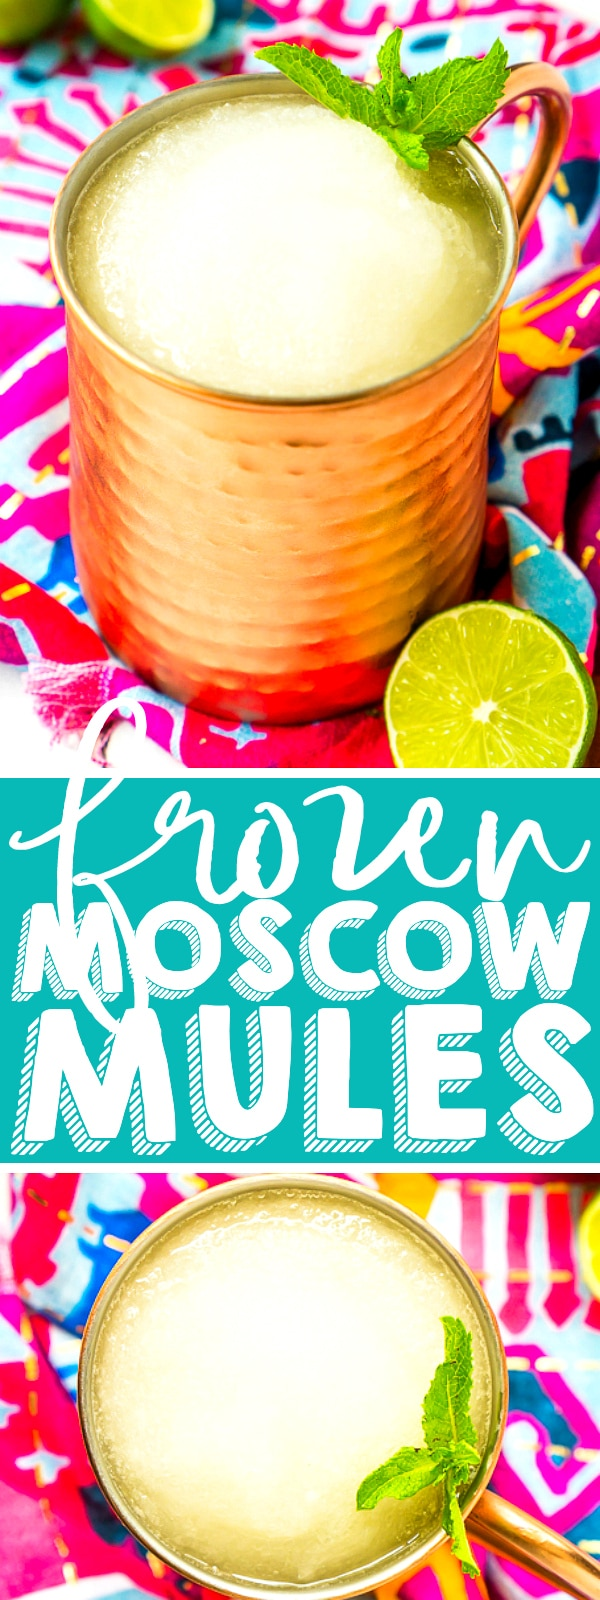 Frozen Moscow Mule Slushies is a large batch cocktail recipe you will love for hot summer days! Three ingredients will help you make an amazing frozen cocktail that is both sweet and tangy! It's an easy crowd pleaser!  | THE LOVE NERDS #cocktailrecipe #summerdrinks #moscowmulerecipe #frozencocktail